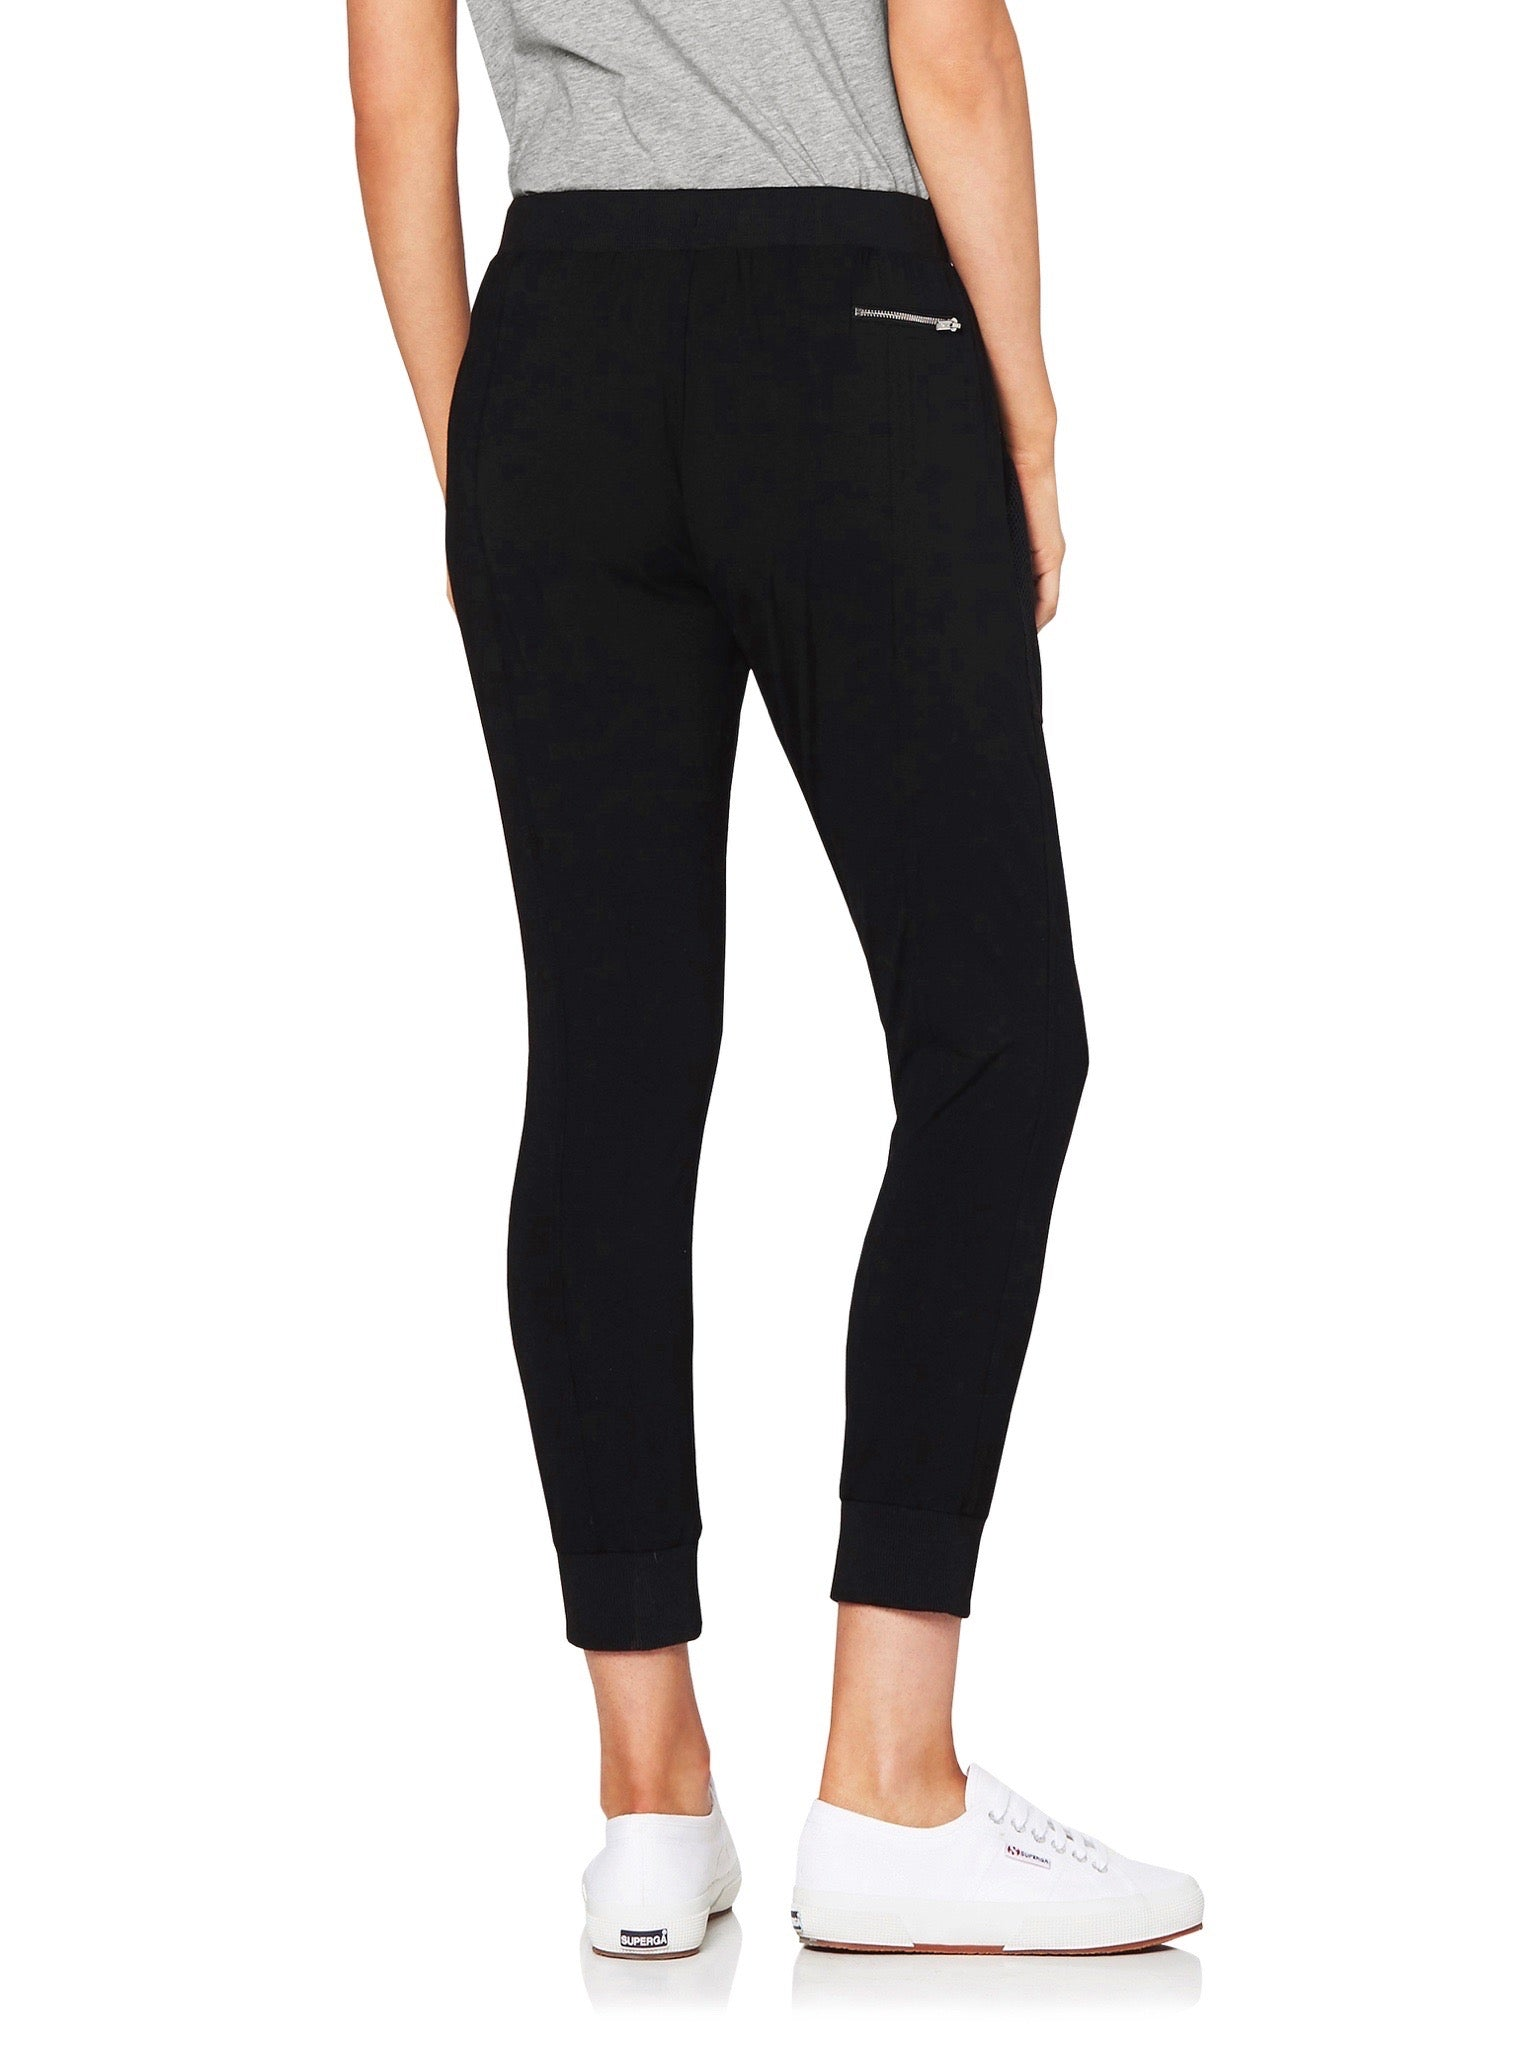 LILLY 3/4 MESH POCKET PANT - BLACK